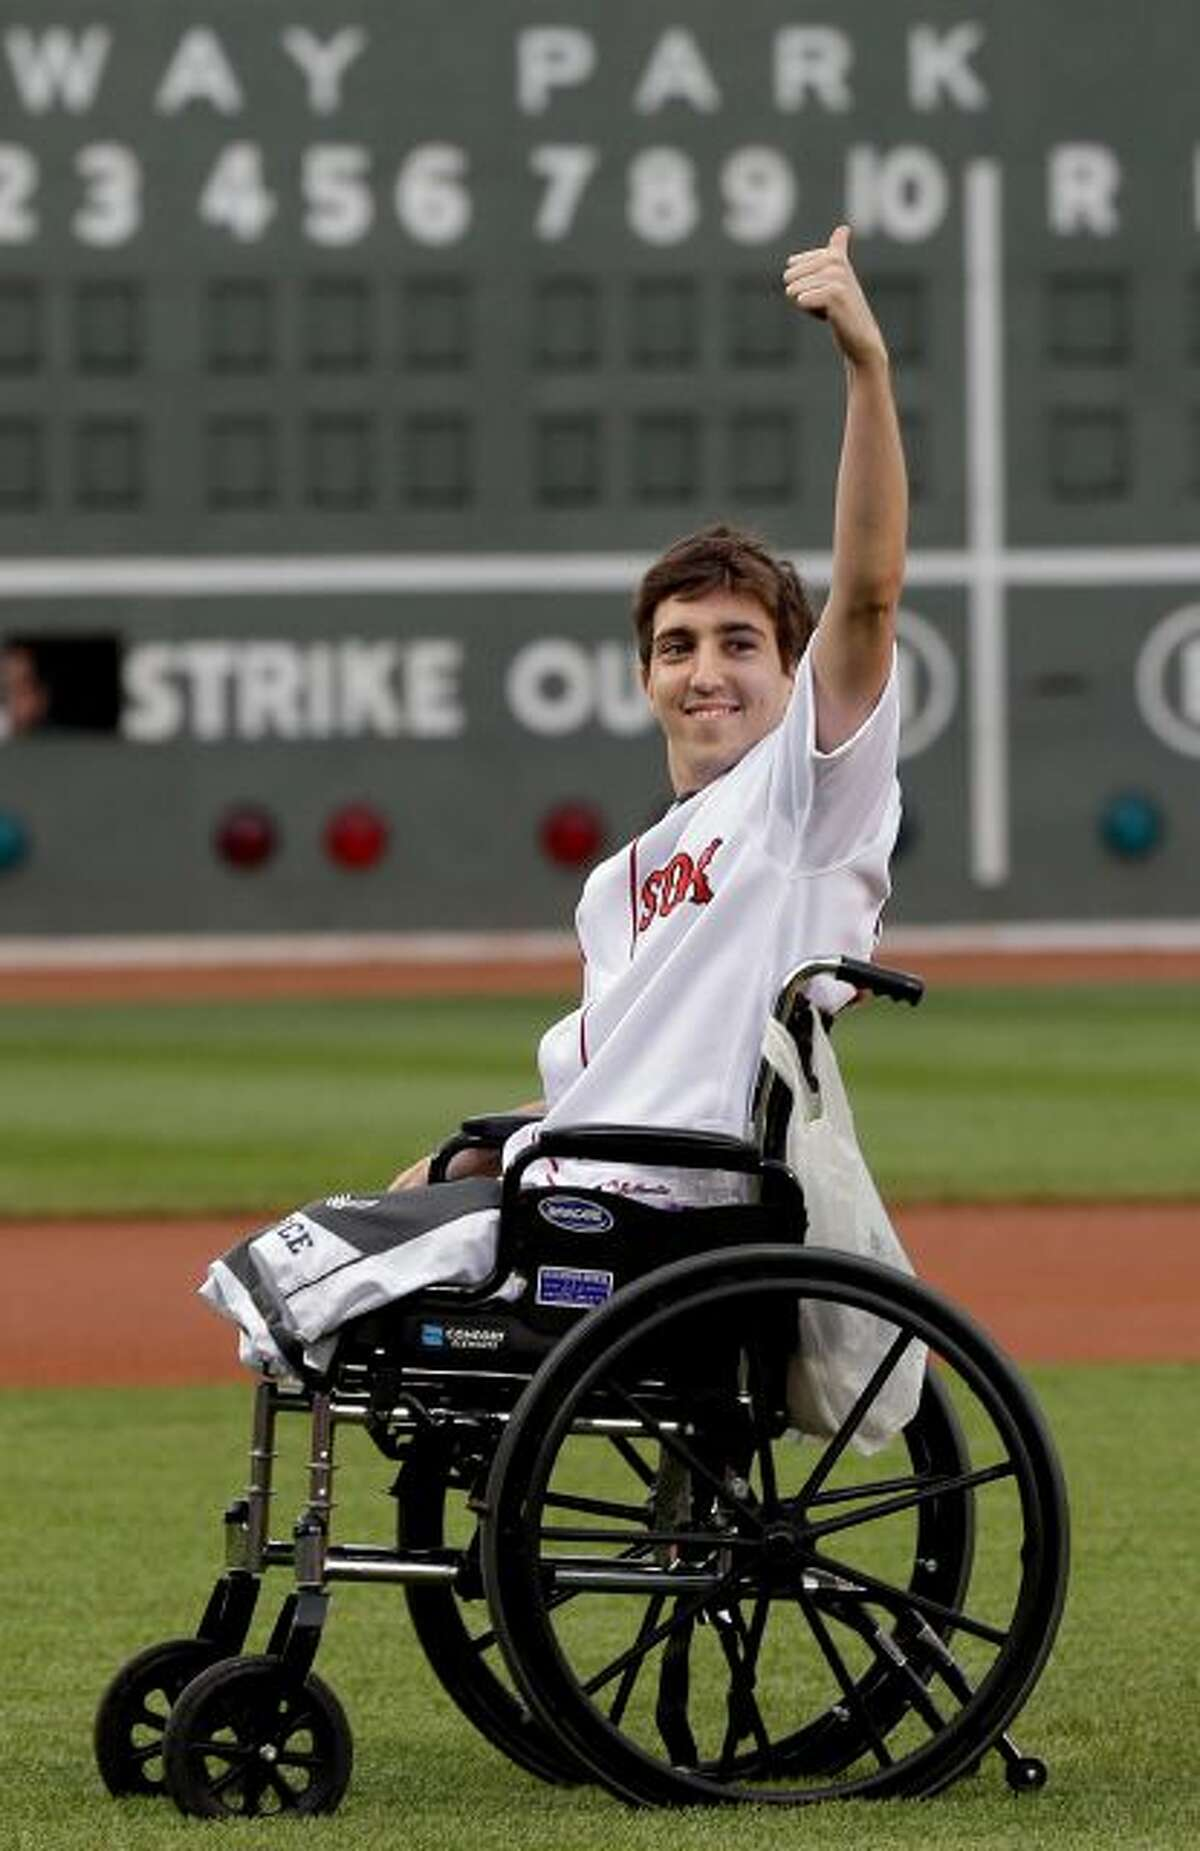 This May 28, 2013 file photo, Boston Marathon bombing survivor Jeff Bauman acknowledges cheering fans before throwing out a ceremonial first pitch at Fenway Park prior to a baseball between the Boston Red Sox and the Philadelphia Phillies in Boston. Bauman, who lost both legs in the Boston Marathon bombings, then helped authorities identify the suspects, is engaged and an expectant father. Bauman and his fiancé, Erin Hurley, tell The Associated Press that the baby is due July 14. They...